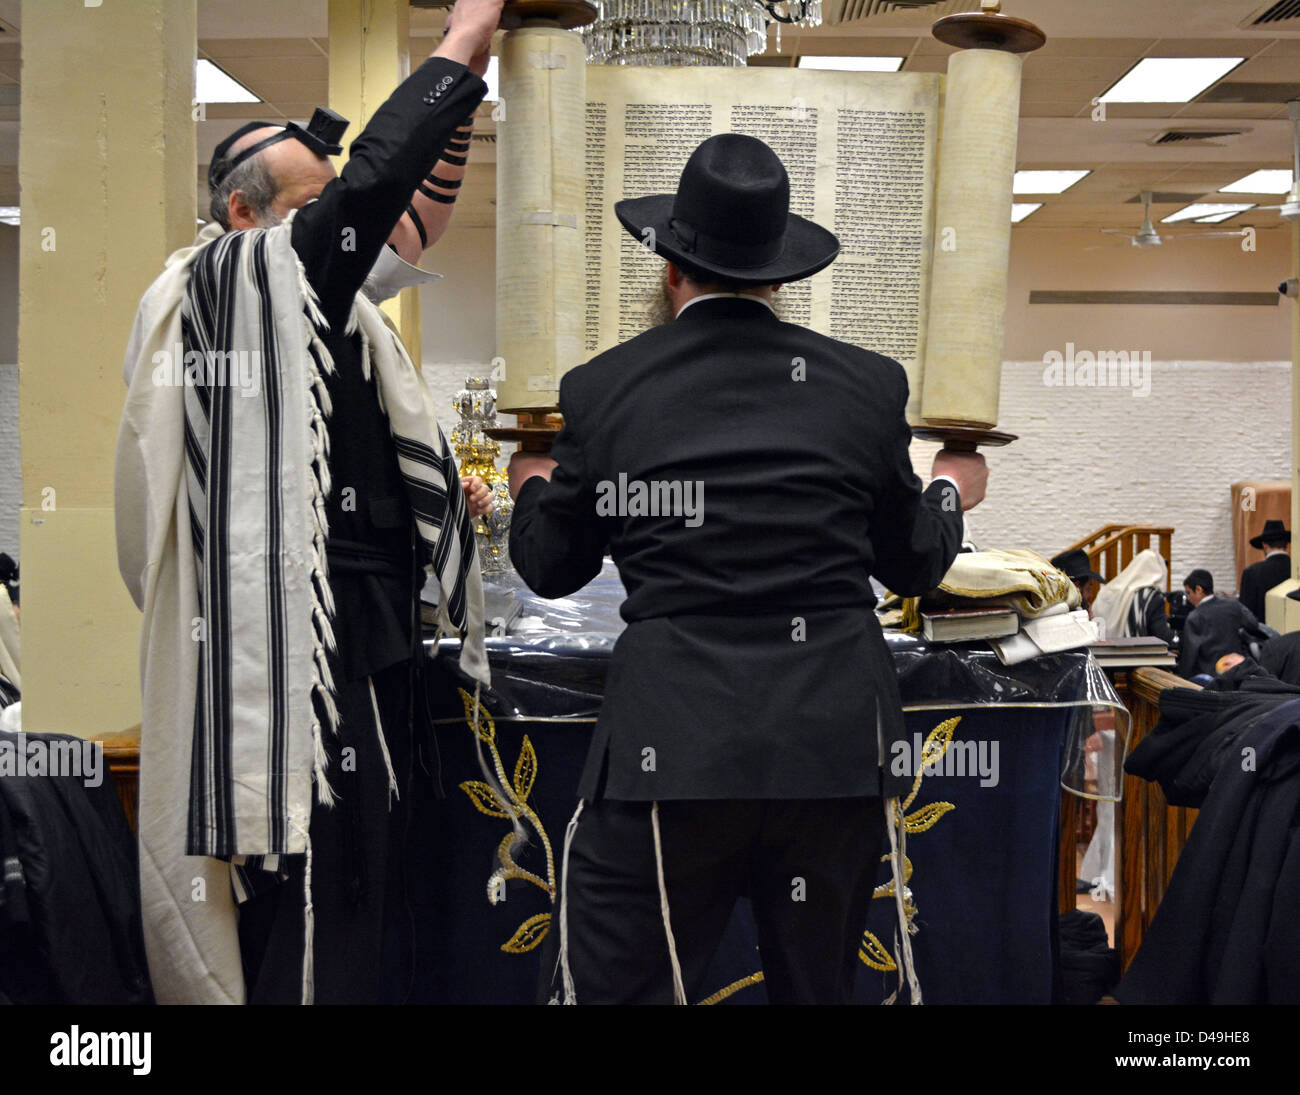 During morning services at Lubavitch Headquarters a worshiper lifts the Torah prior to it being returned to the Stock Photo